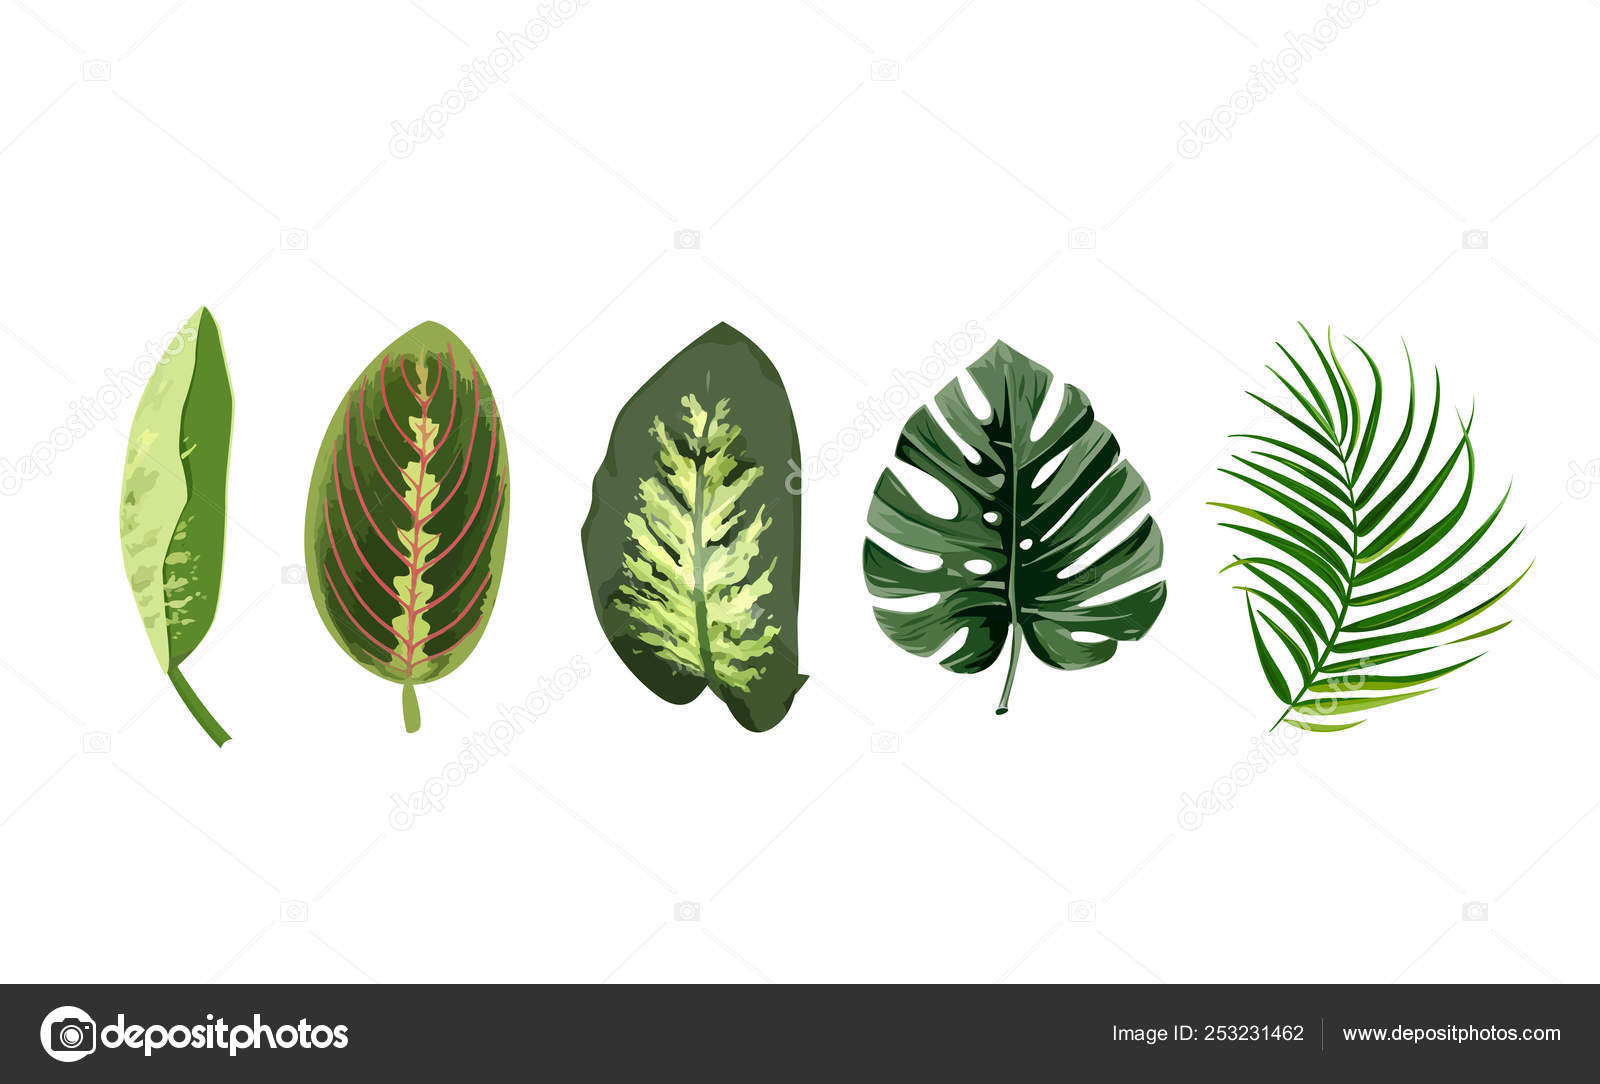 Set Of Tropical Leaves Monstera Dieffenbachia Palm Leaf Isolated Single Leaves On White Background Stock Vector C Elena Murr 253231462 The monstera deliciosa or the swiss cheese plant is an easy care indoor plant complete with monstera deliciosa, the hurricane or swiss cheese plant are all names for an old fashioned but. set of tropical leaves monstera dieffenbachia palm leaf isolated single leaves on white background stock vector c elena murr 253231462